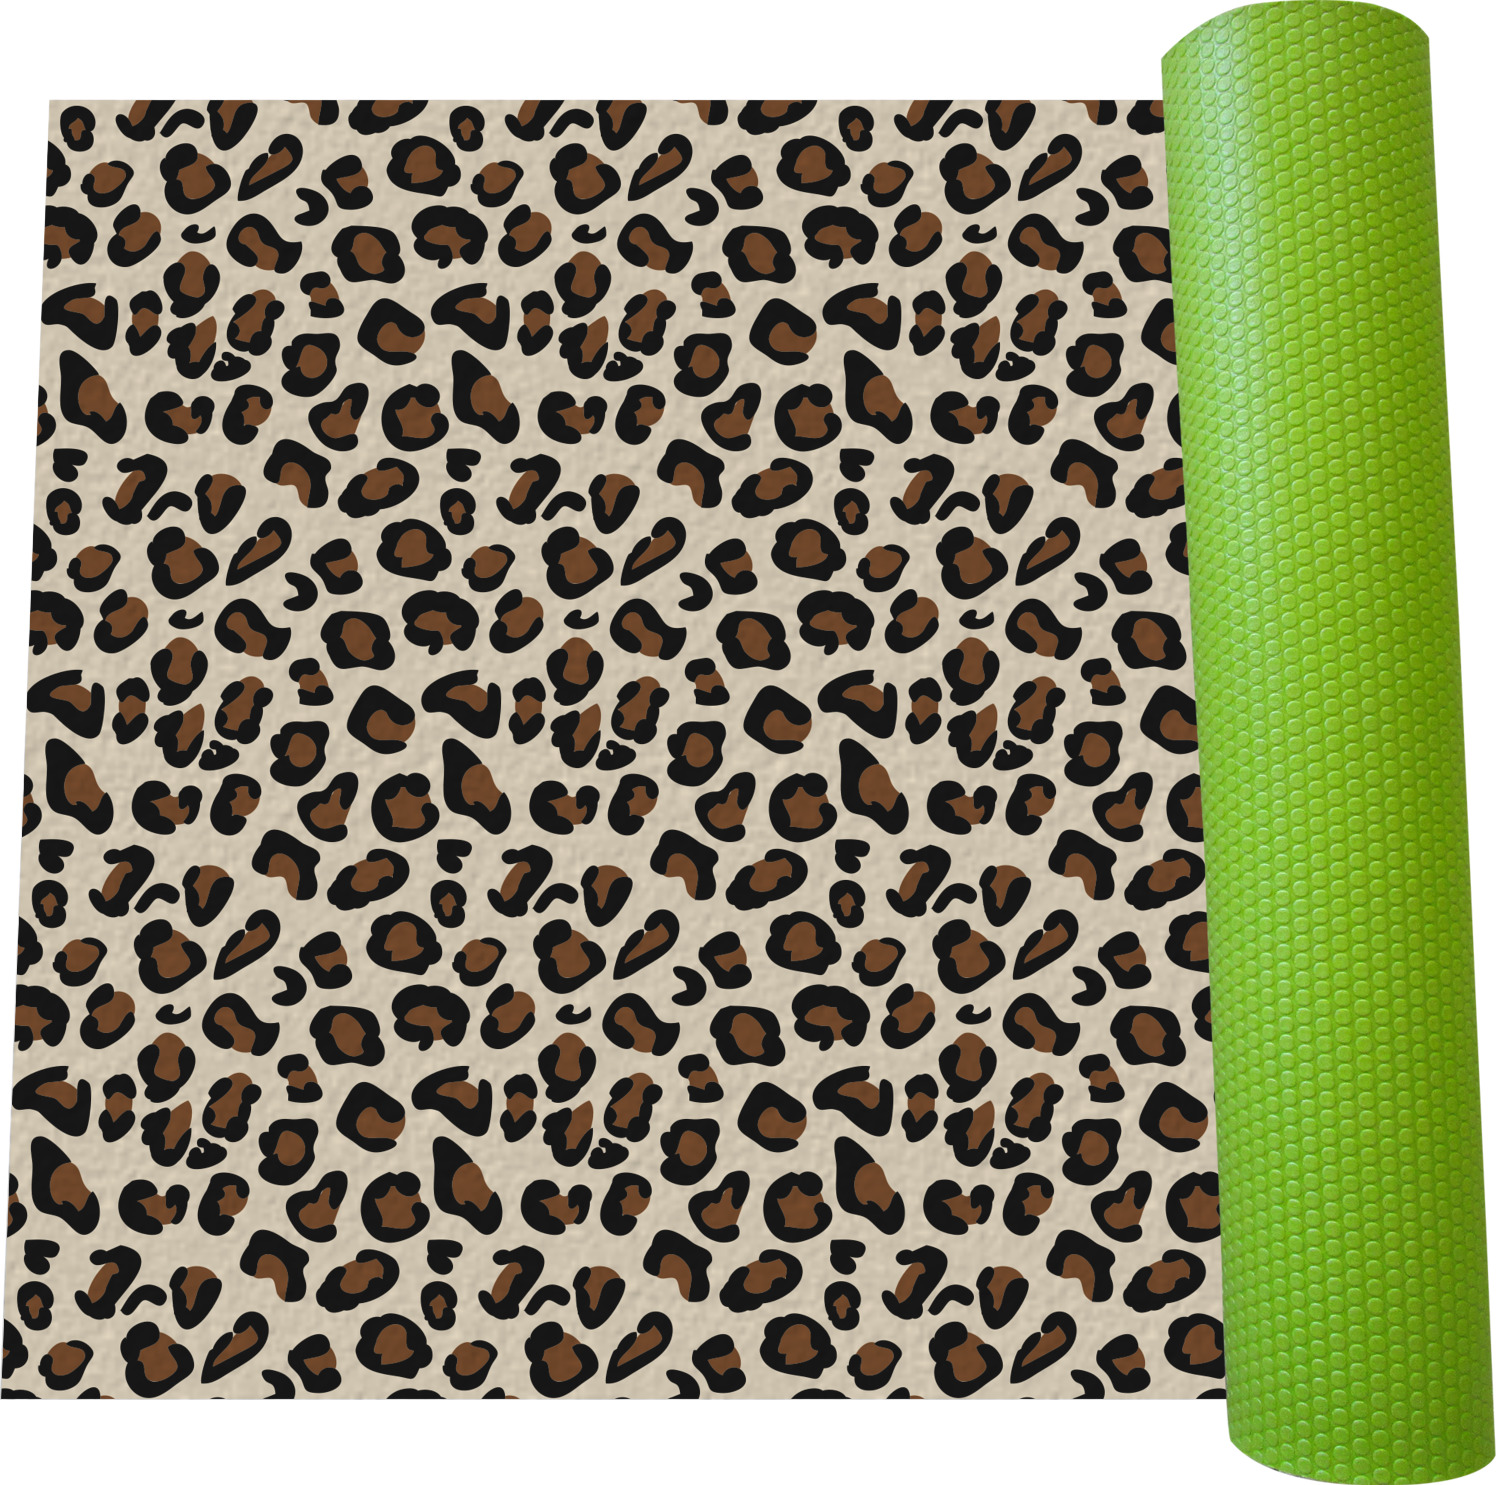 Leopard Print Yoga Mat Personalized Youcustomizeit